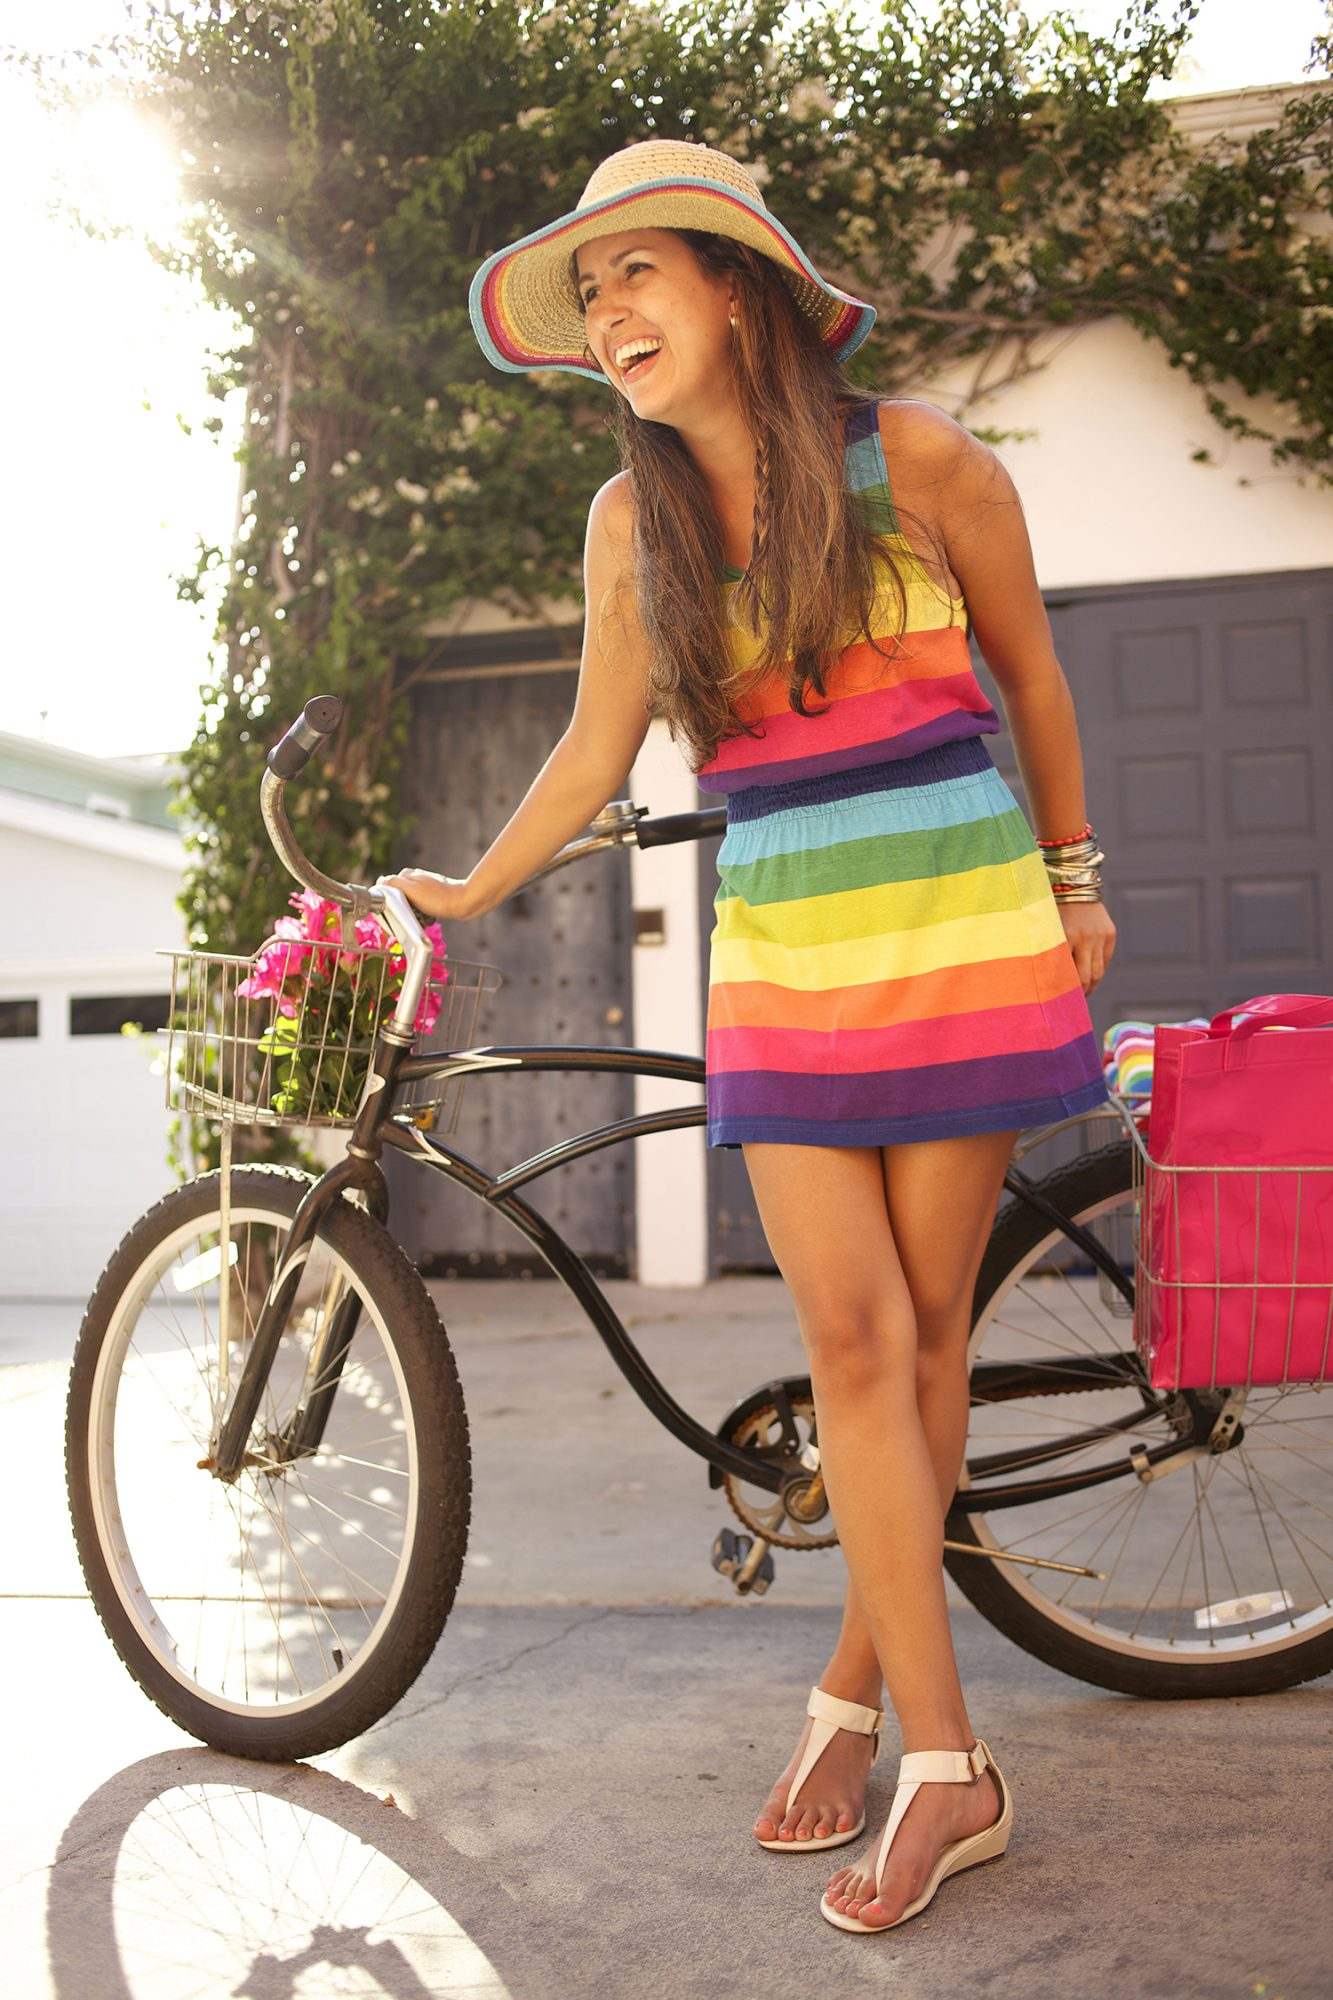 Woman in colorful outfit